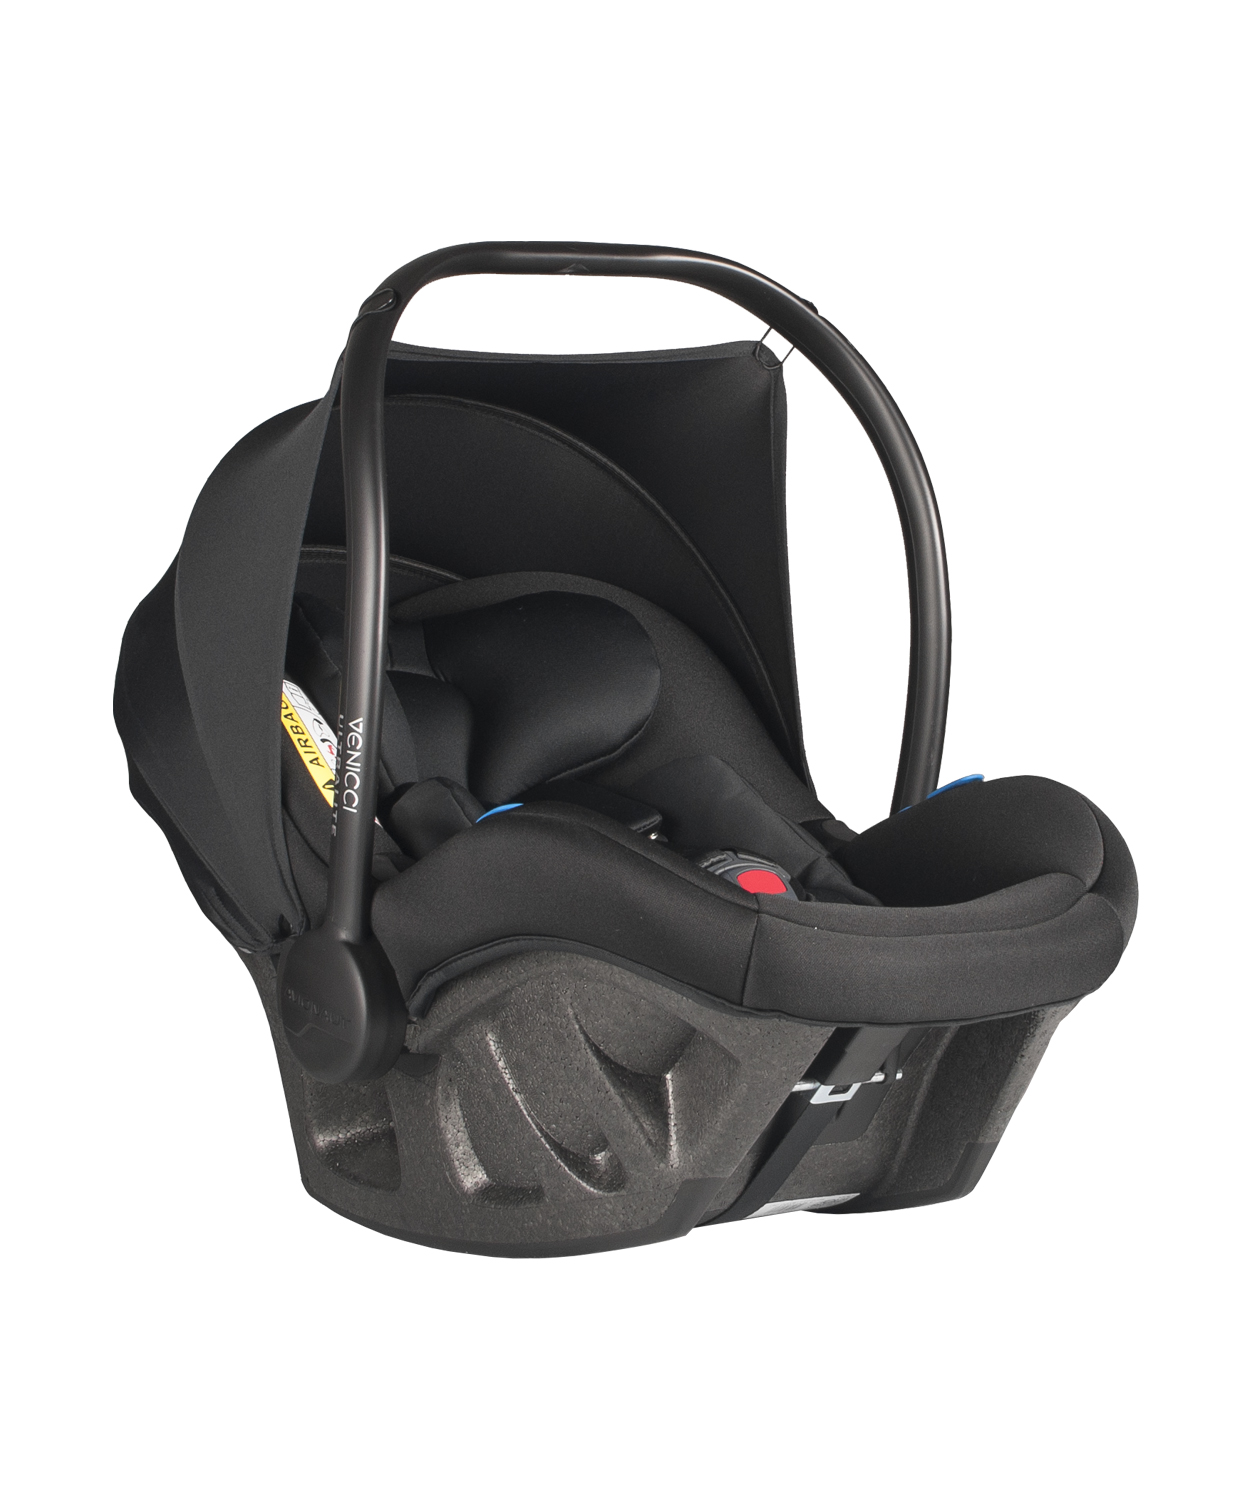 Venicci ultralite car seat - black